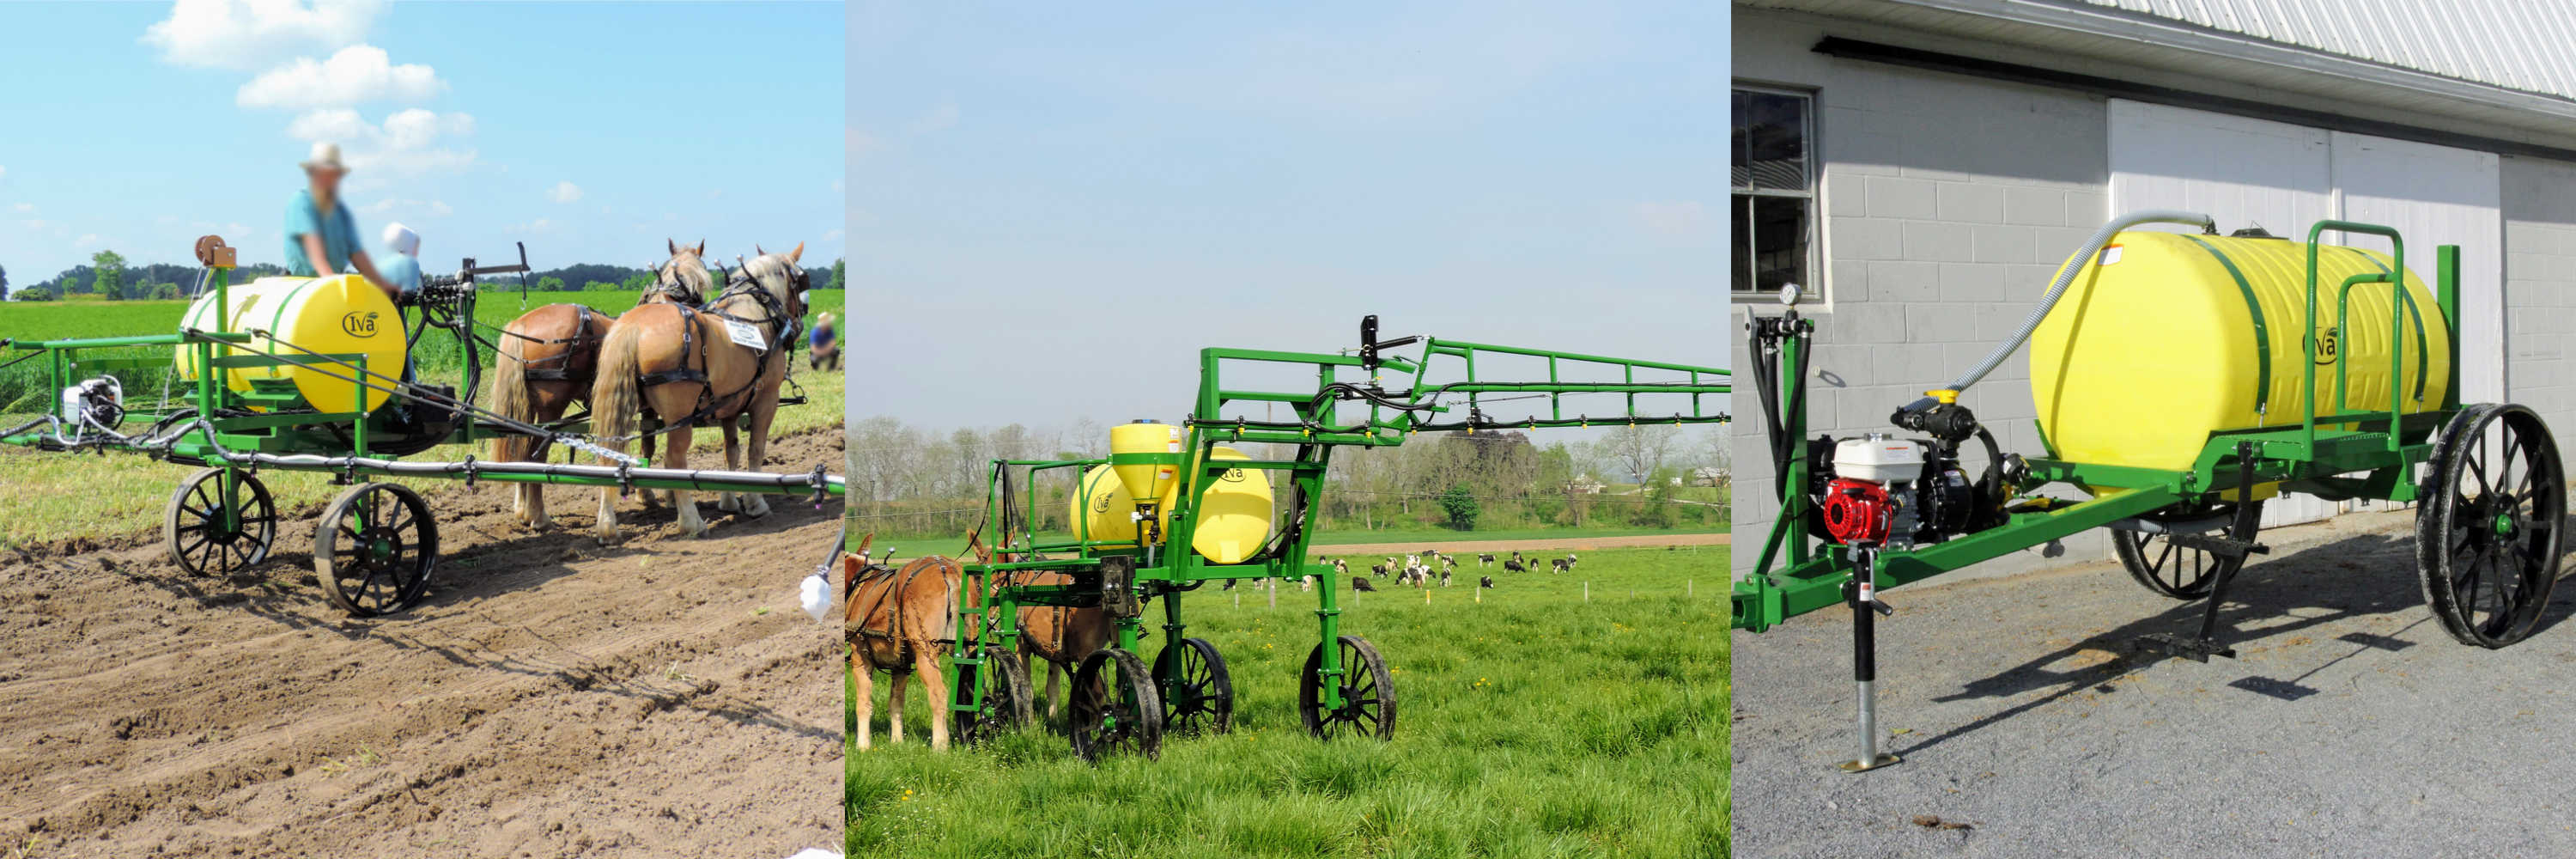 horse-drawn sprayer for the horse farmer from Iva Mfg